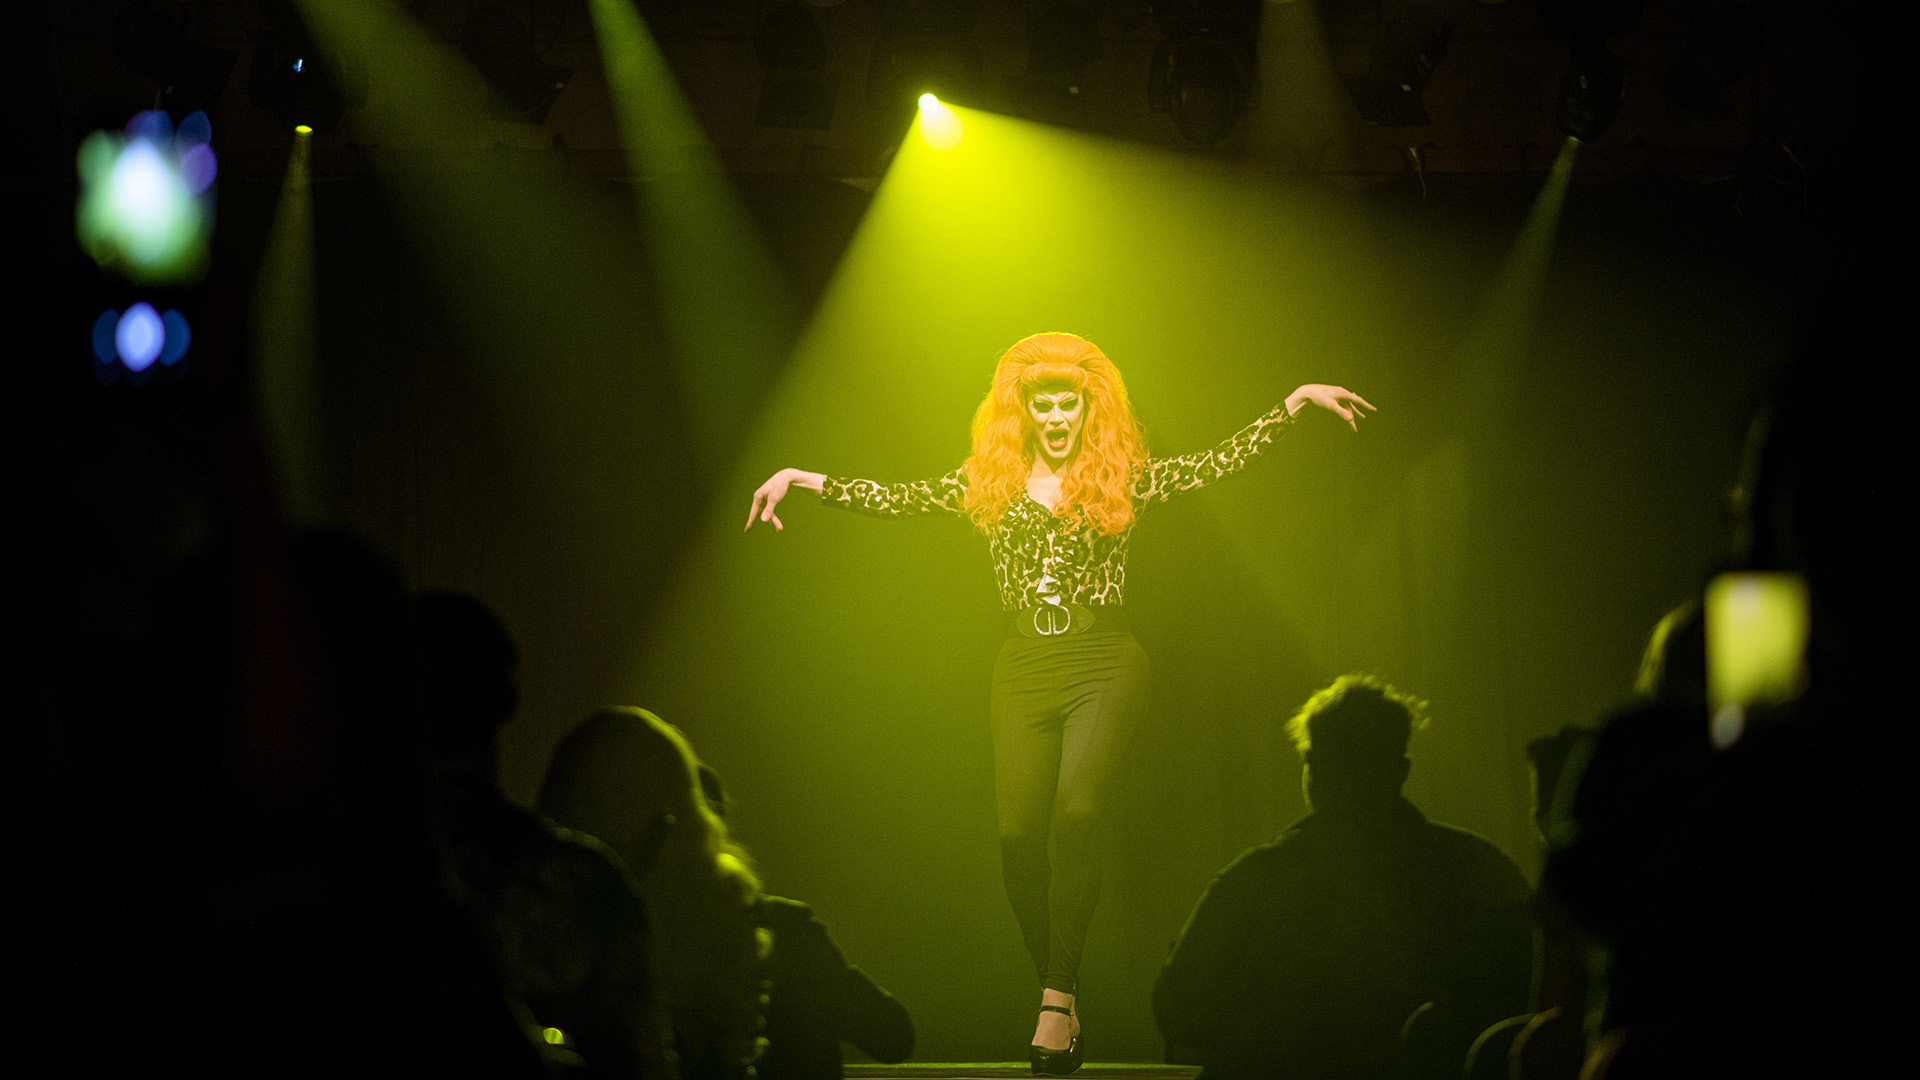 Drag Queen Hungary